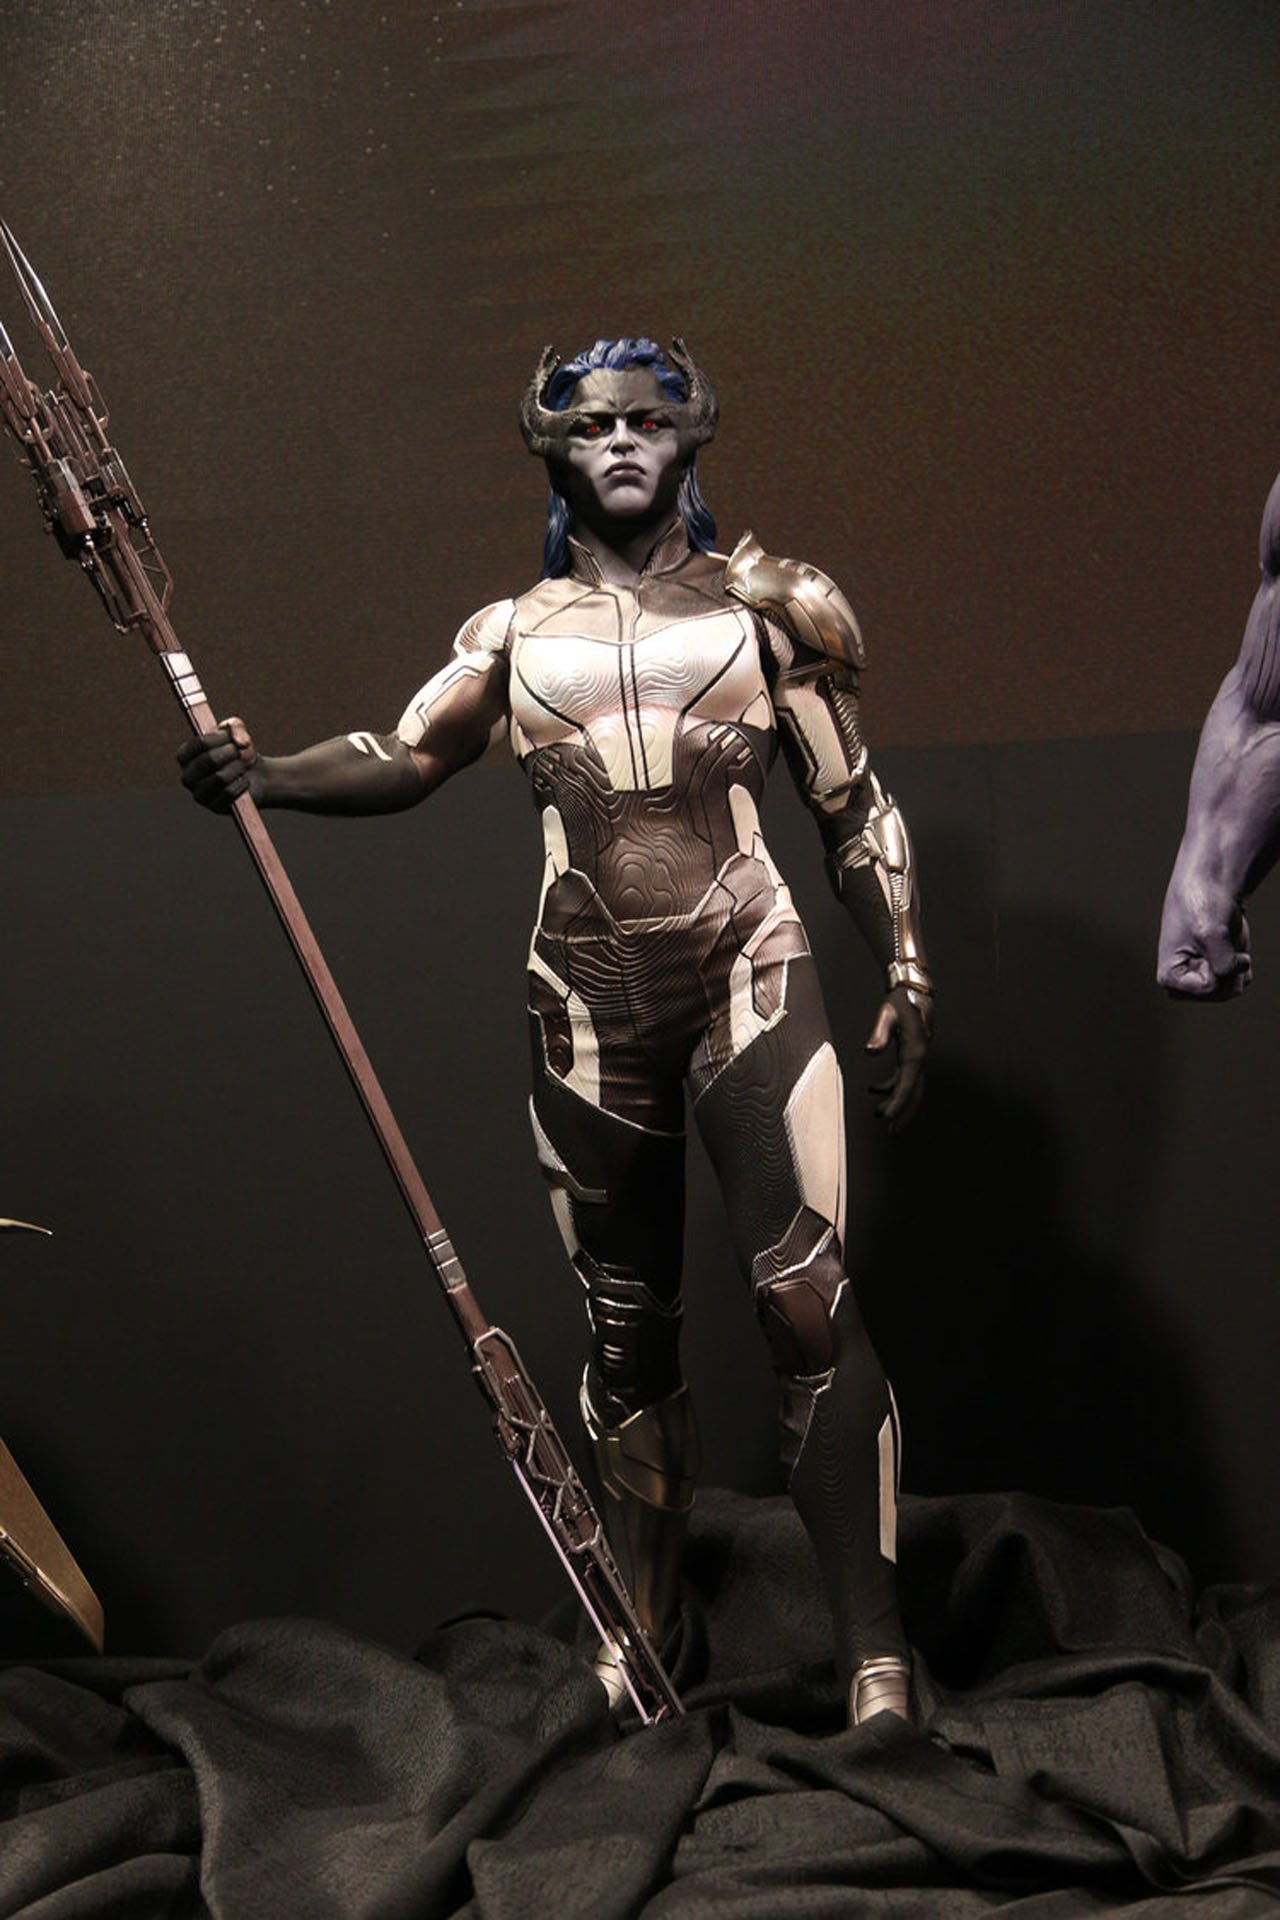 Photo du film Avengers: Infinity War au D23 2017 avec Proxima Midnight